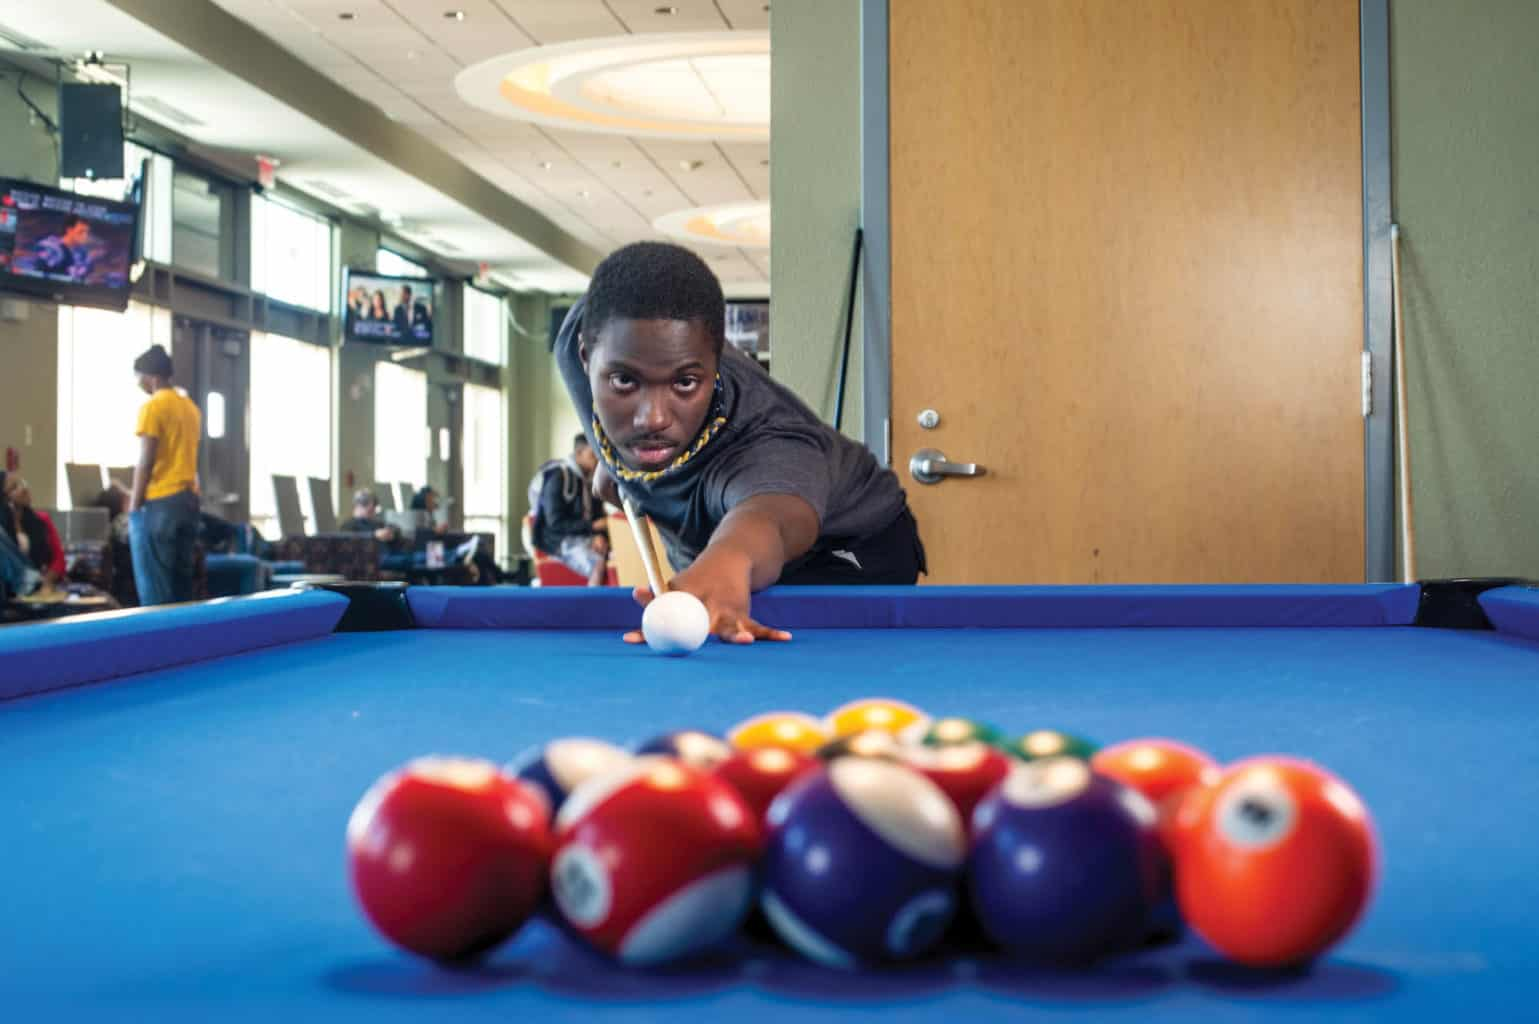 student playing 8-pool